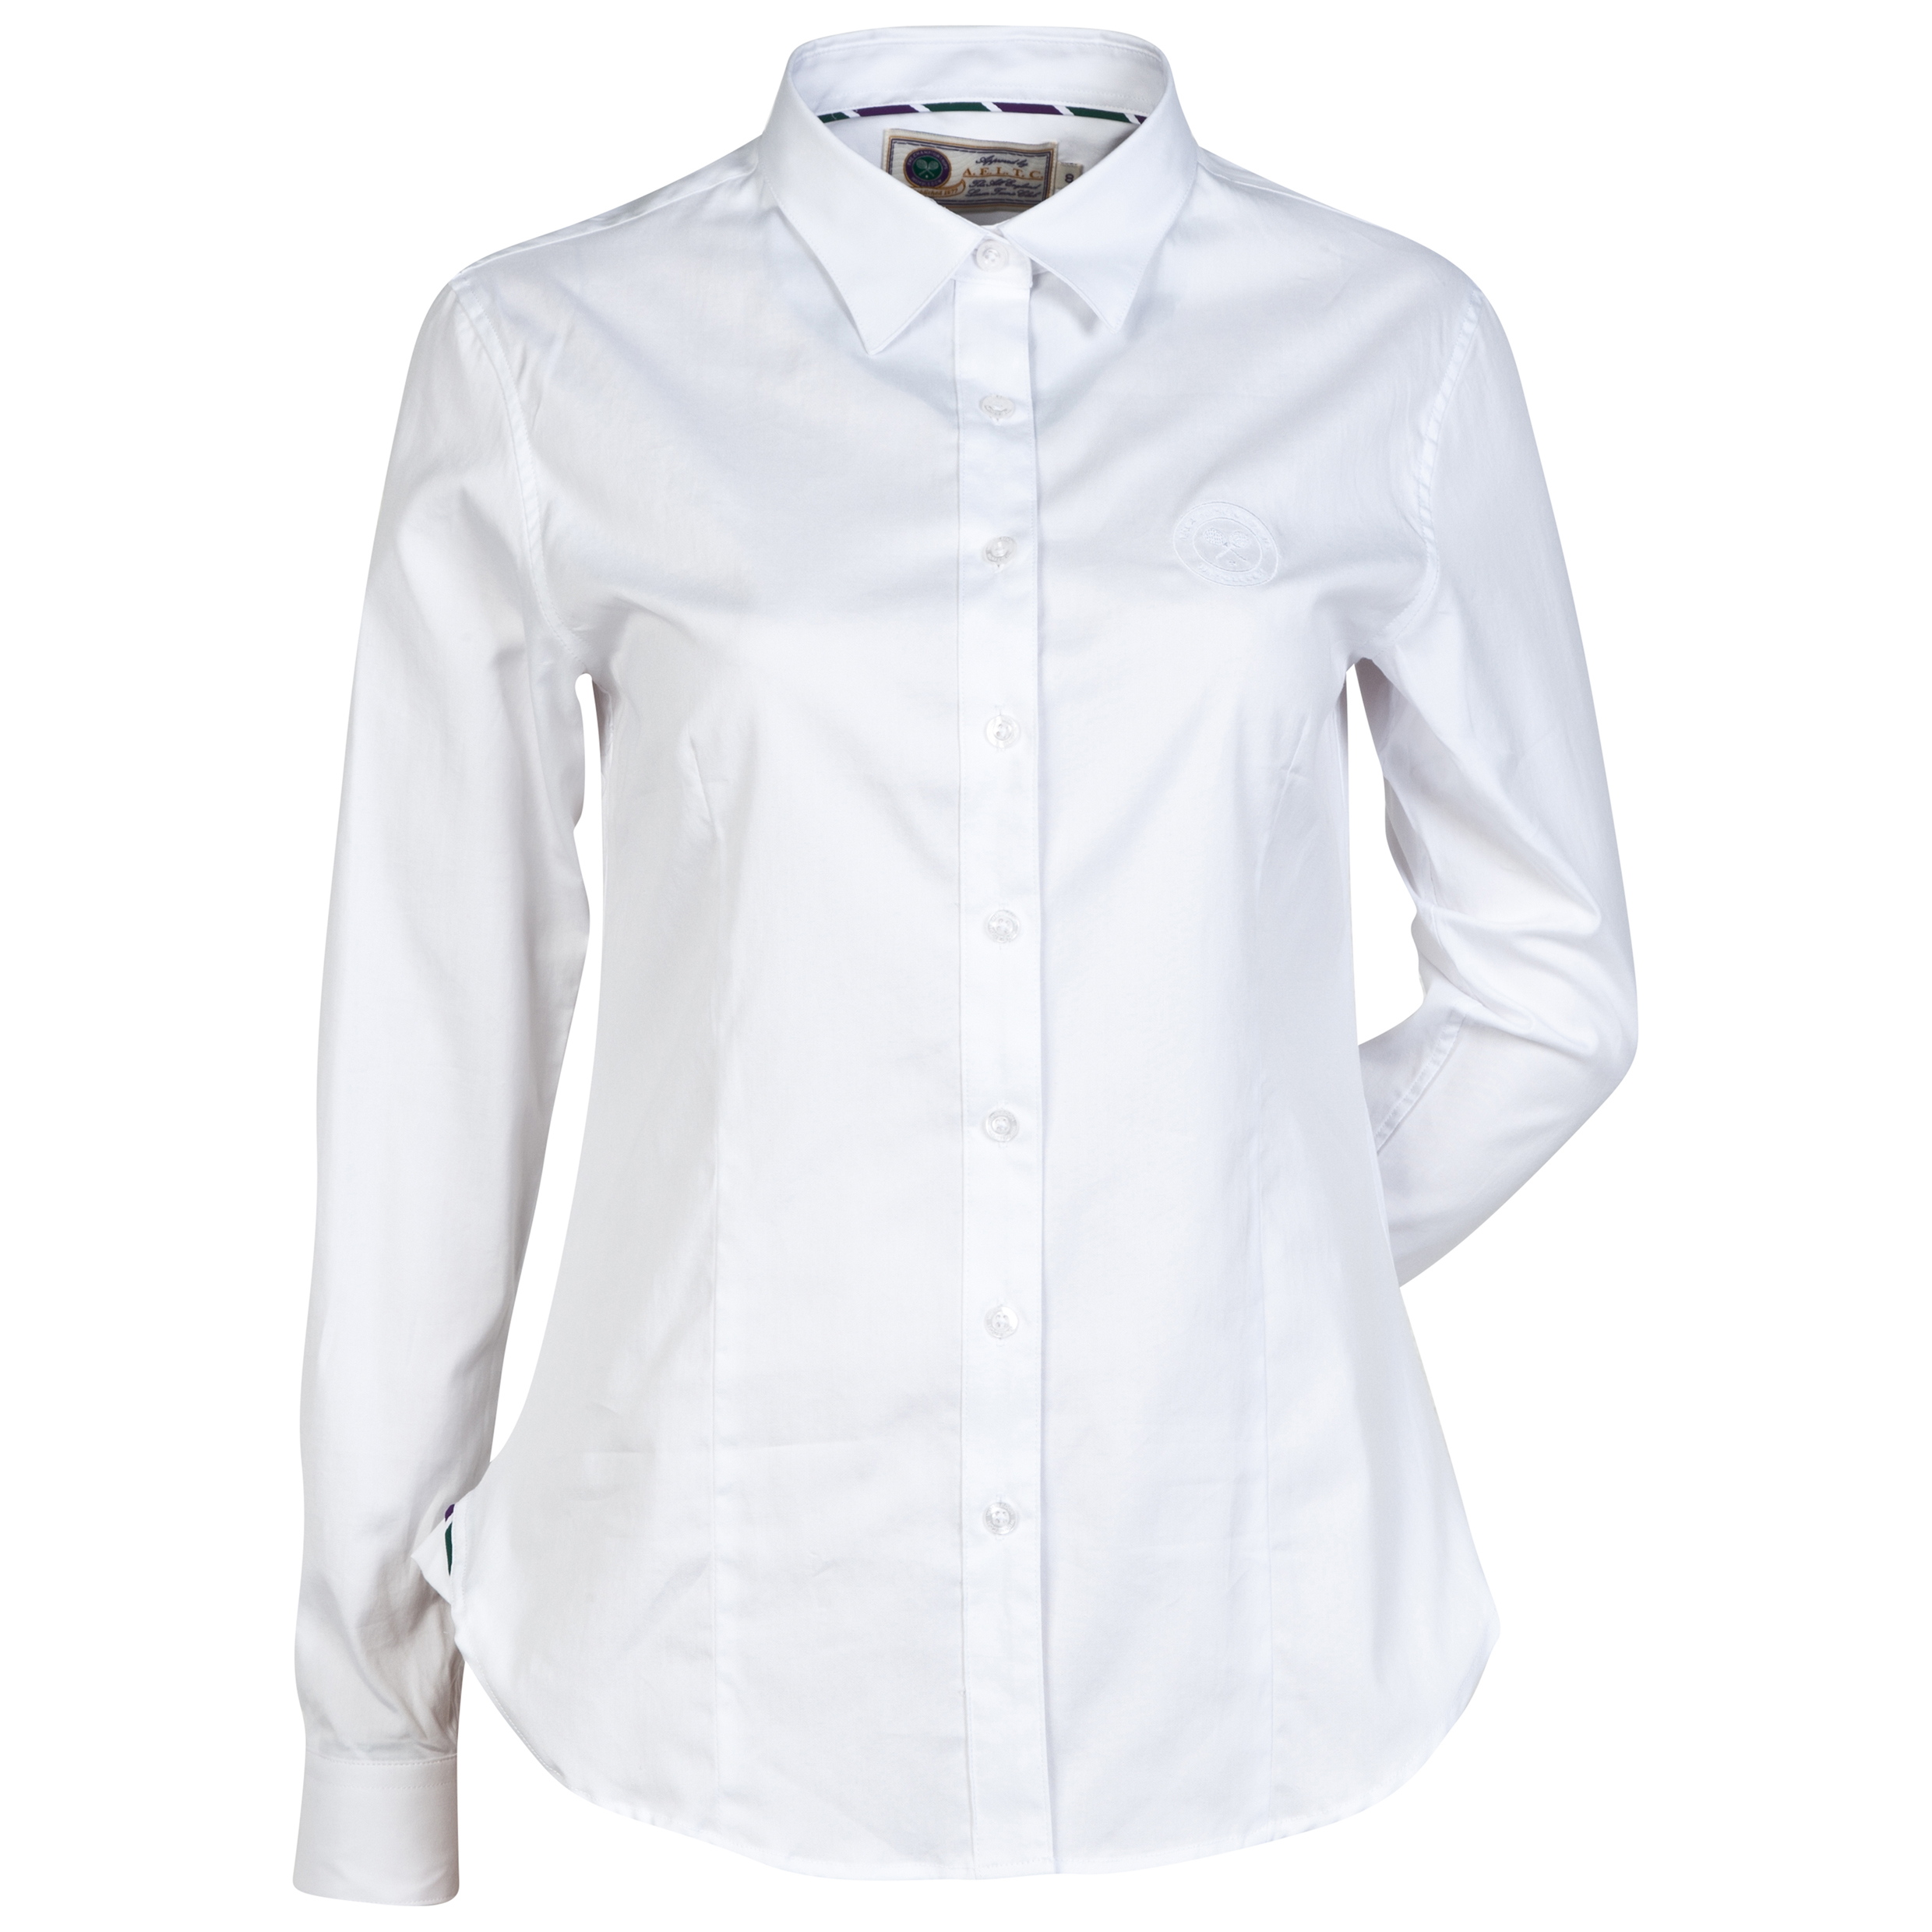 Wimbledon Slim Fit Tailored Shirt - Womens White